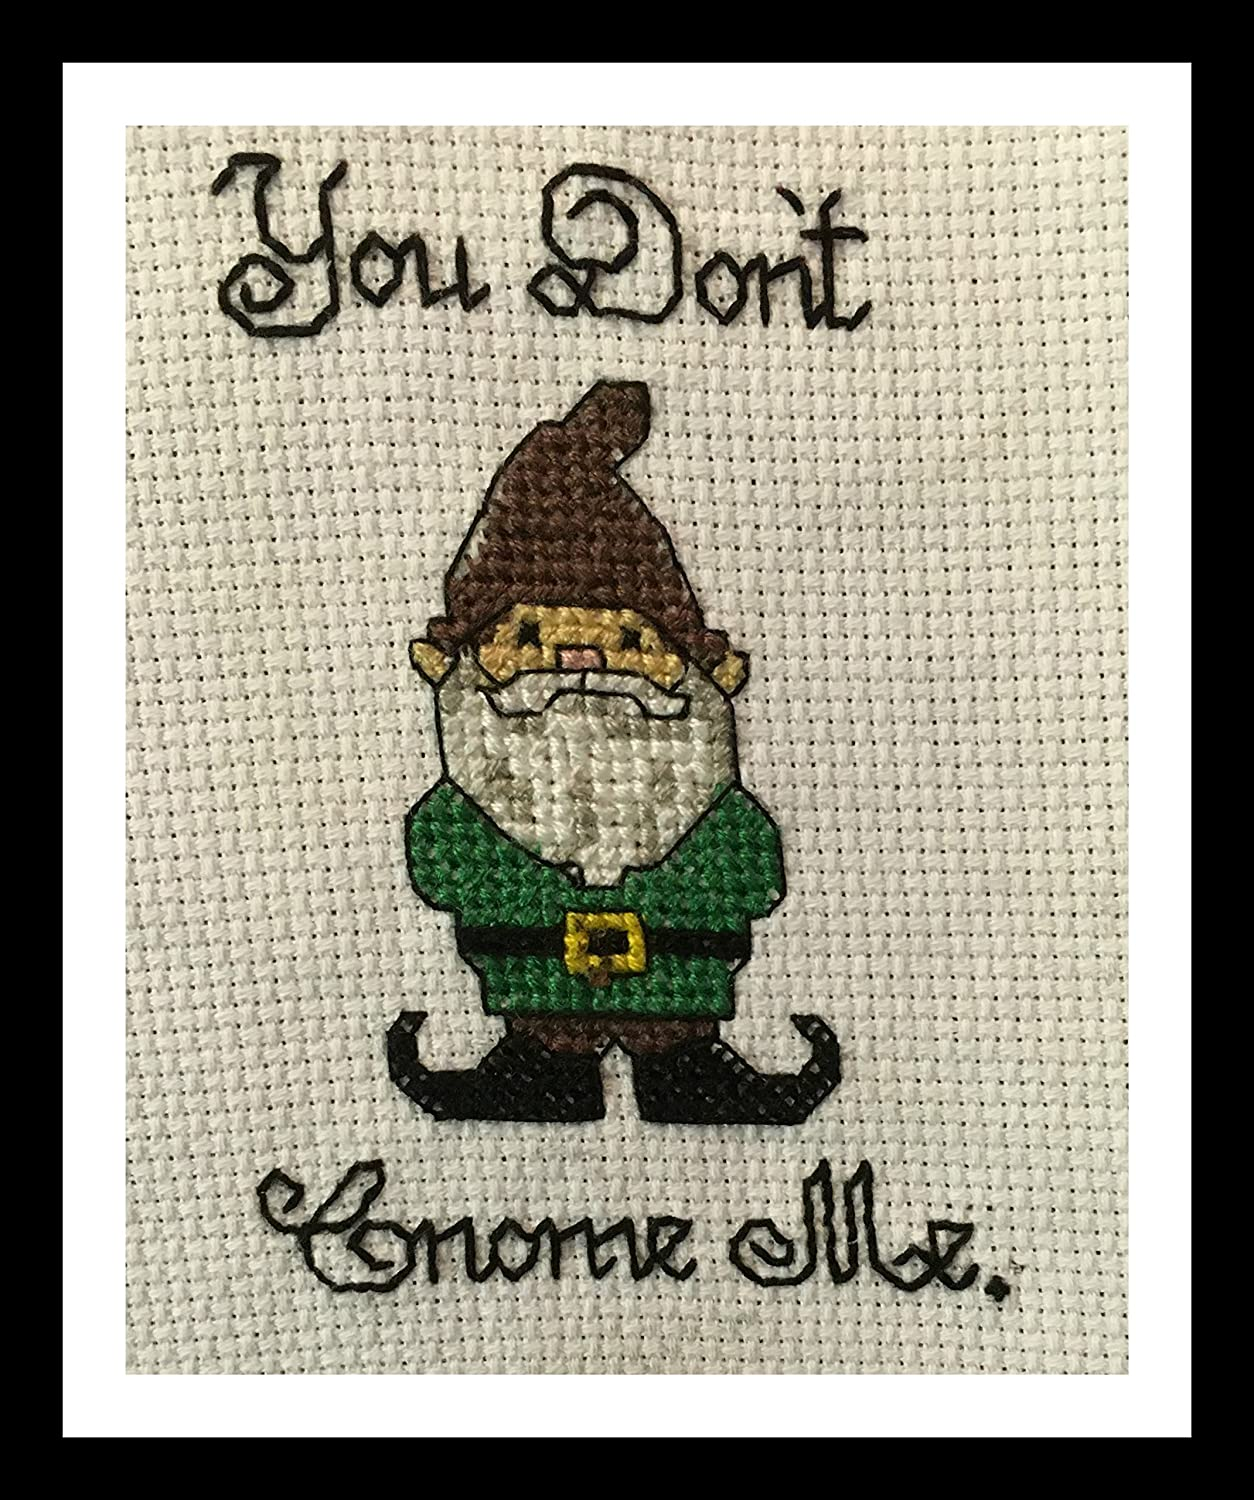 Counted Cross Stitch Pattern. You don't gnome me.